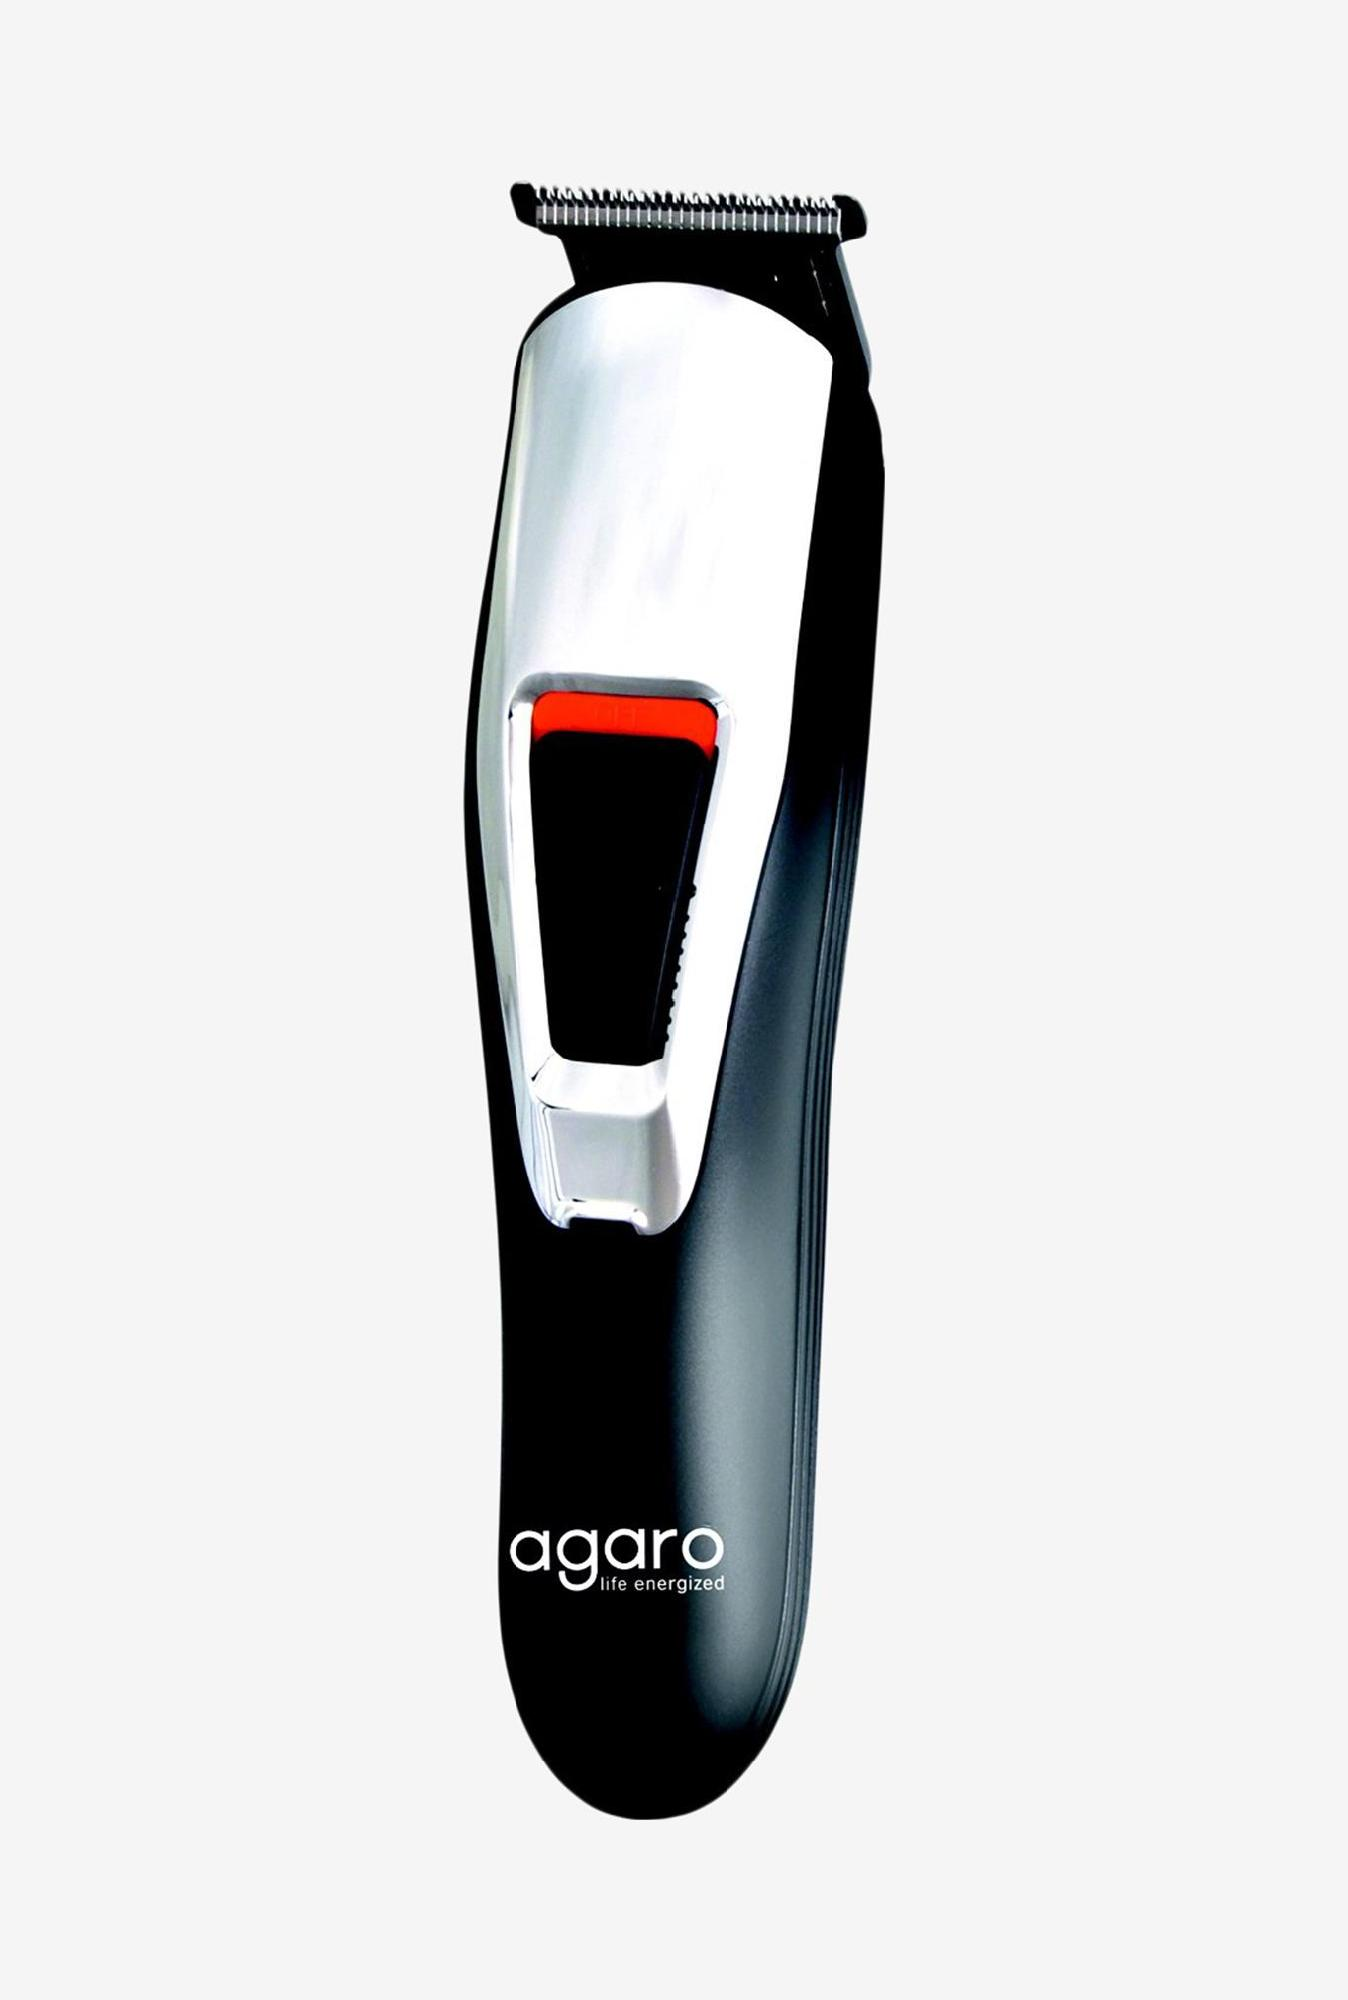 Agaro 6 in 1 6725 Trimmer Black